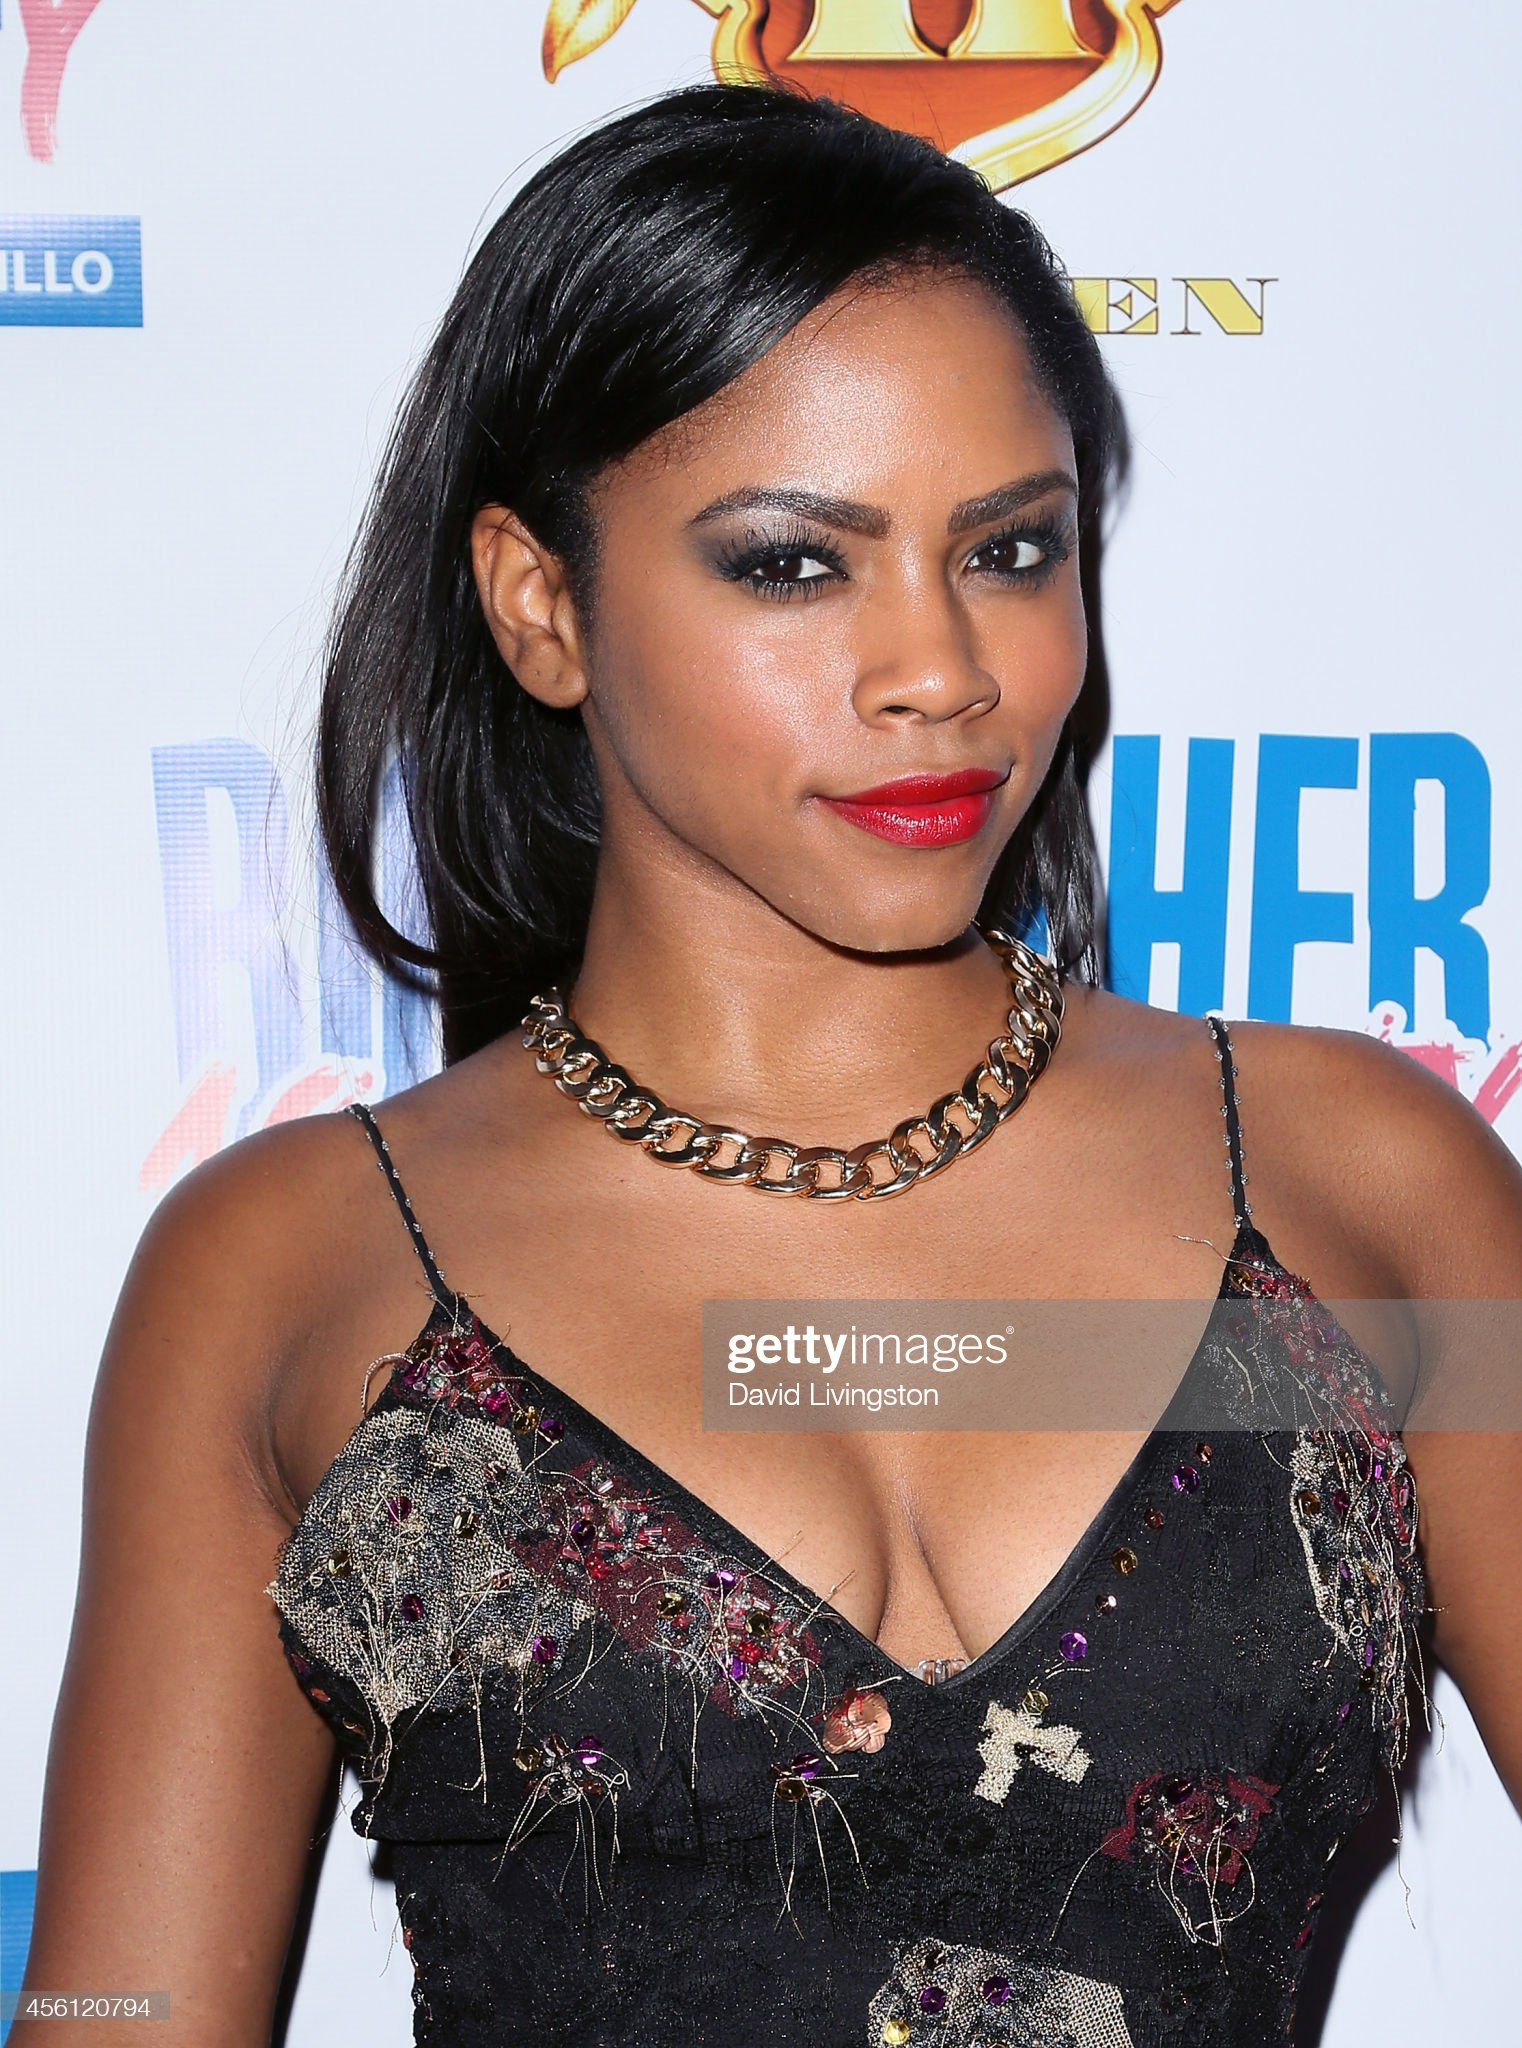 ¿Cuánto mide Shanica Knowles? - Altura - Real height Actress-shanica-knowles-attends-the-big-brother-16-red-carpet-finale-picture-id456120794?s=2048x2048